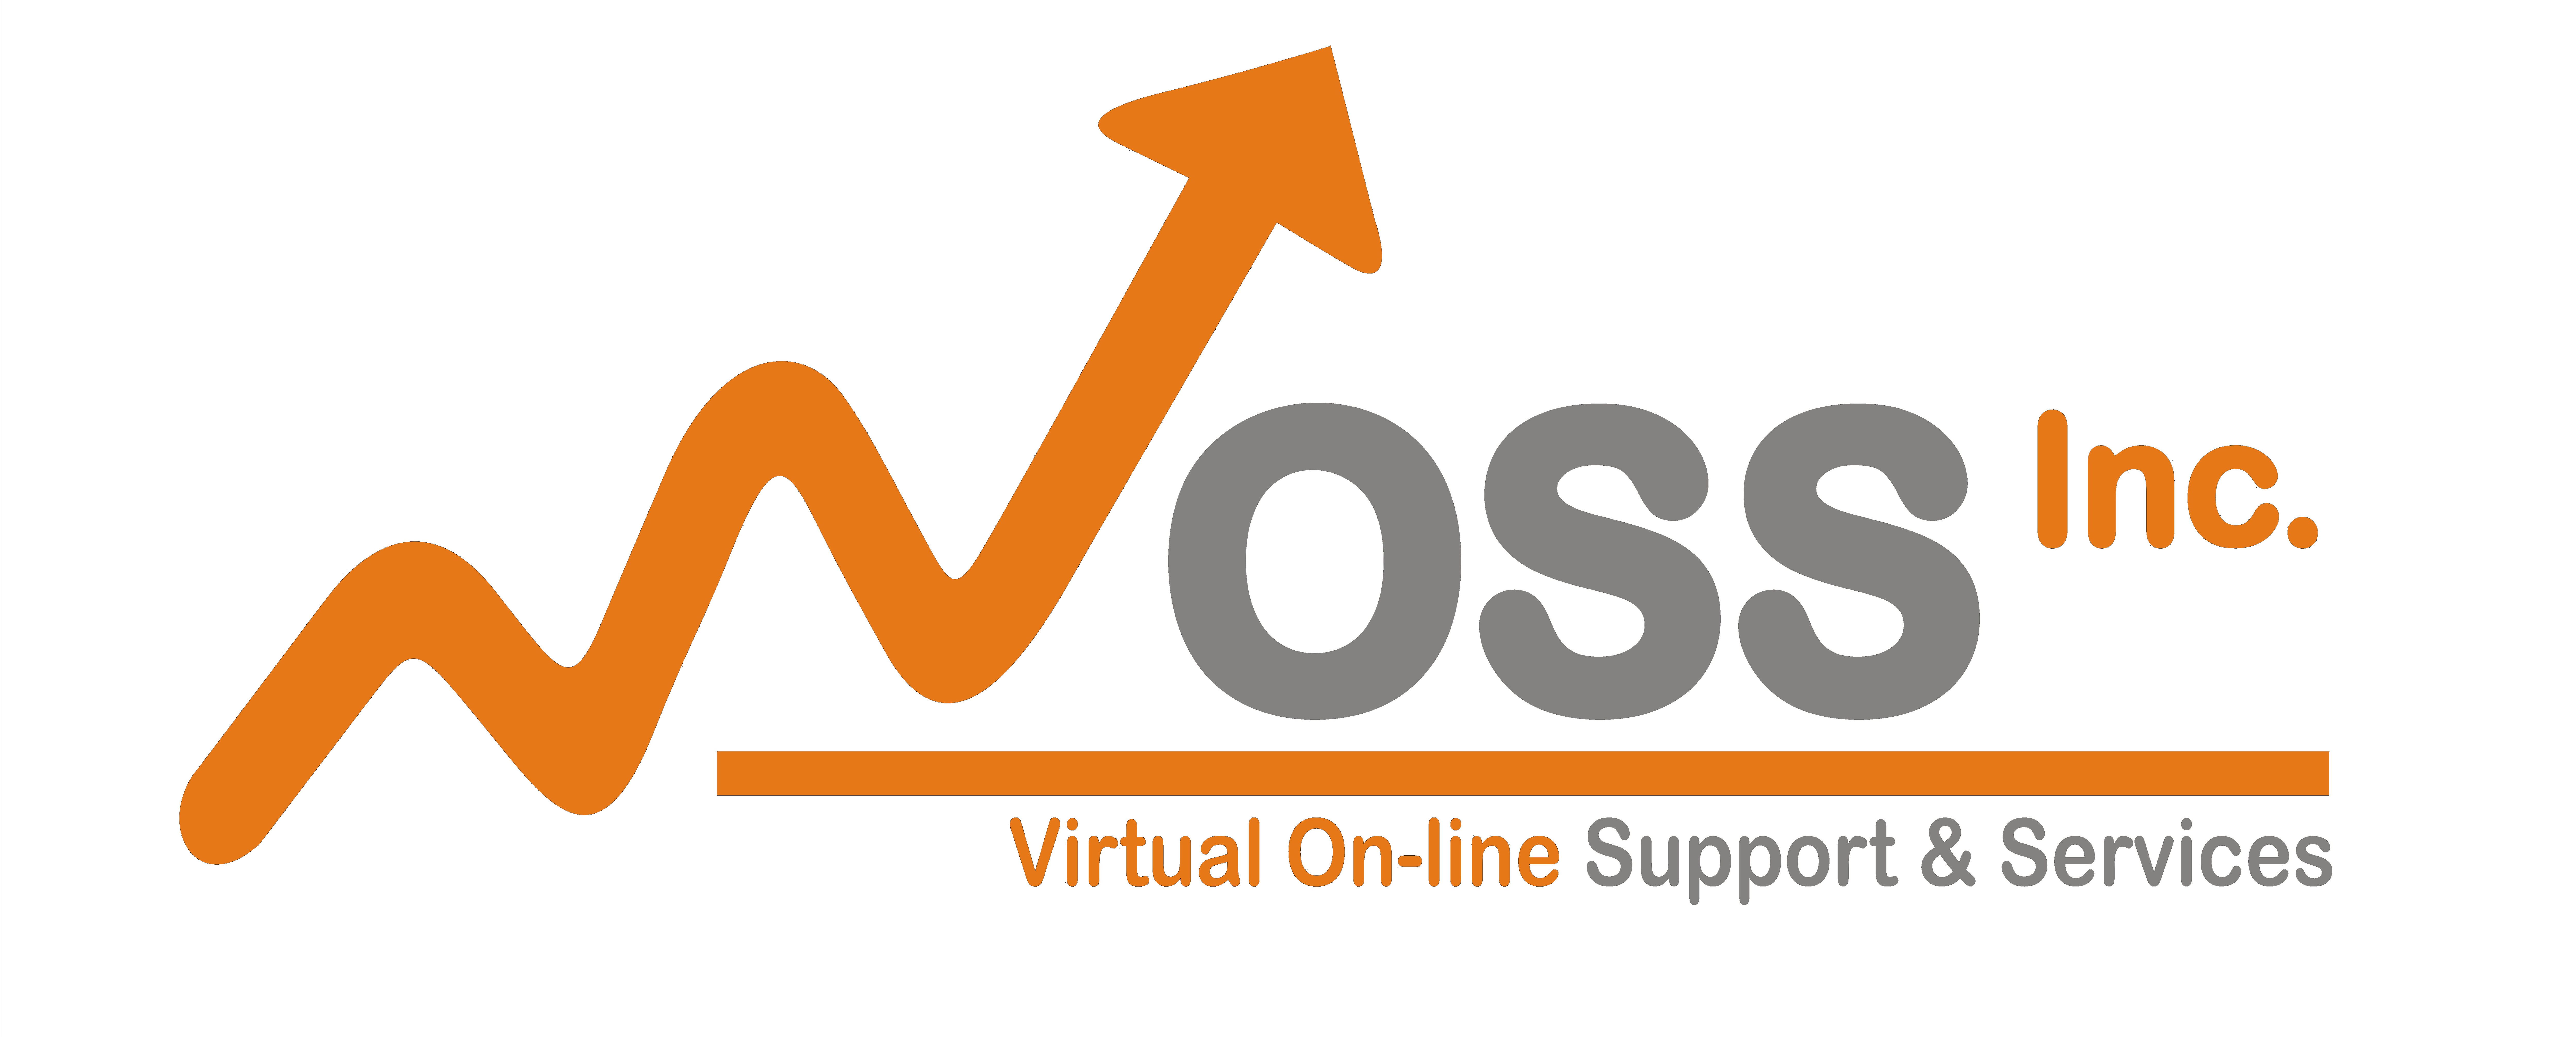 Virtual On-line Support and Services (VOSS) Inc.